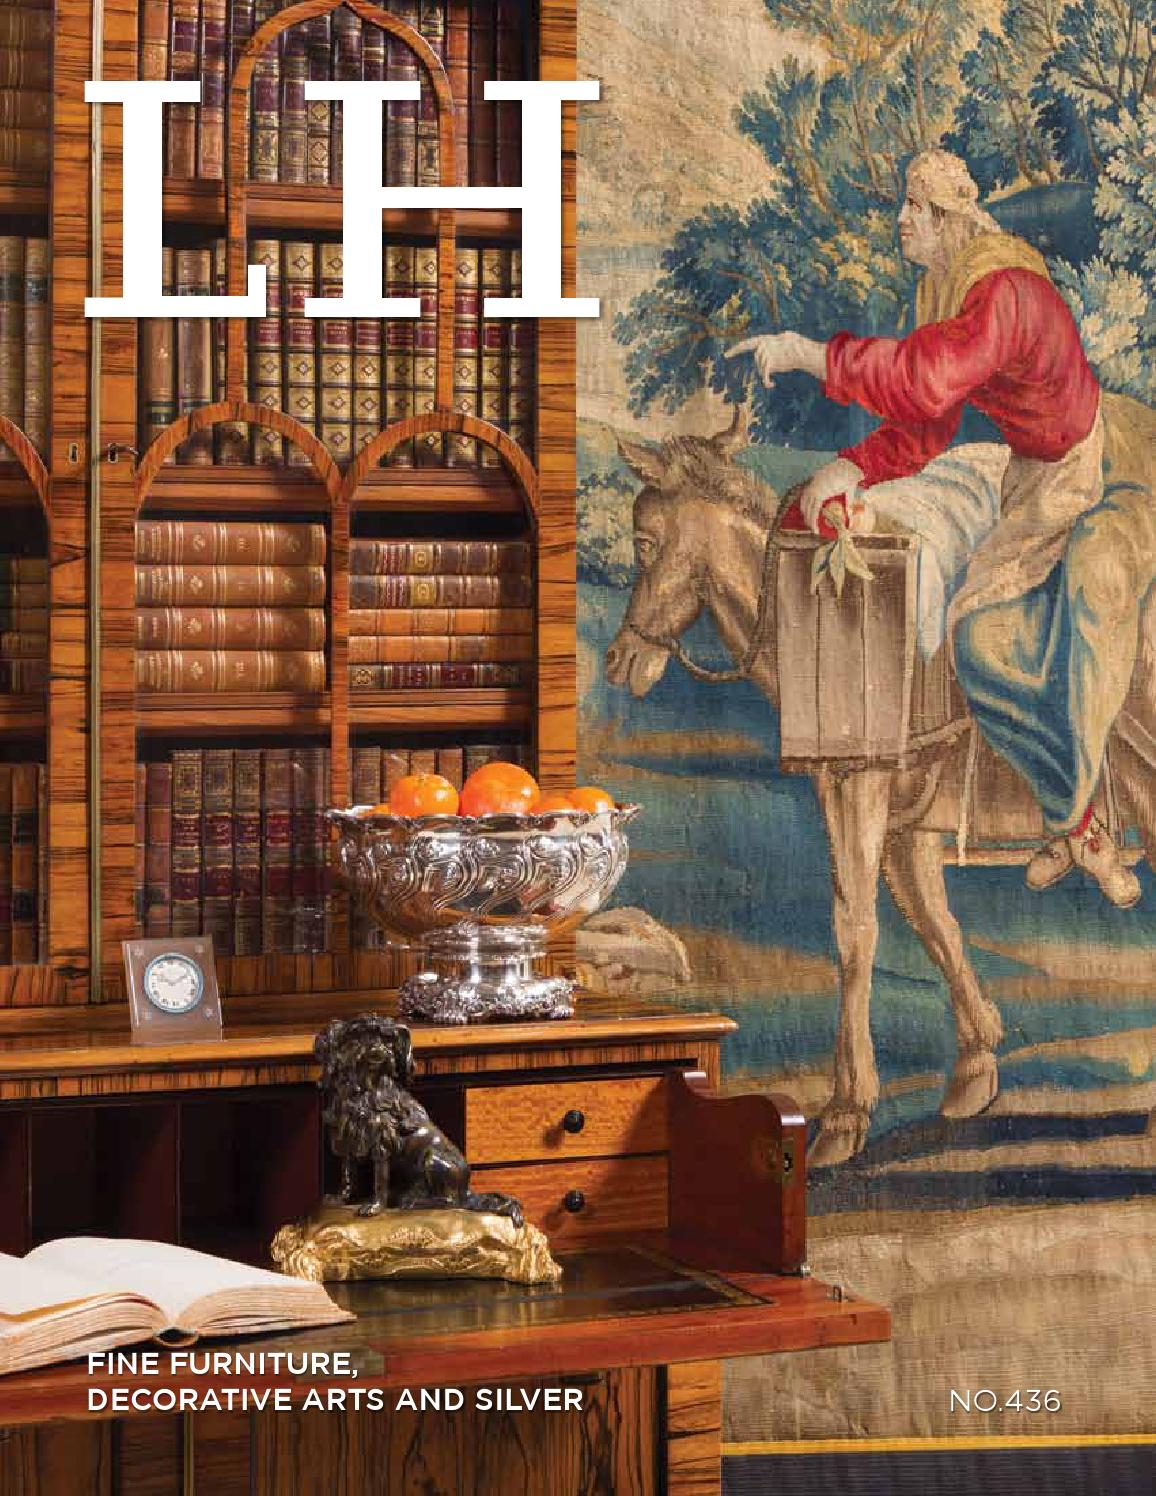 Sale 436 fine furniture decorative arts and silver by leslie hindman auctioneers issuu